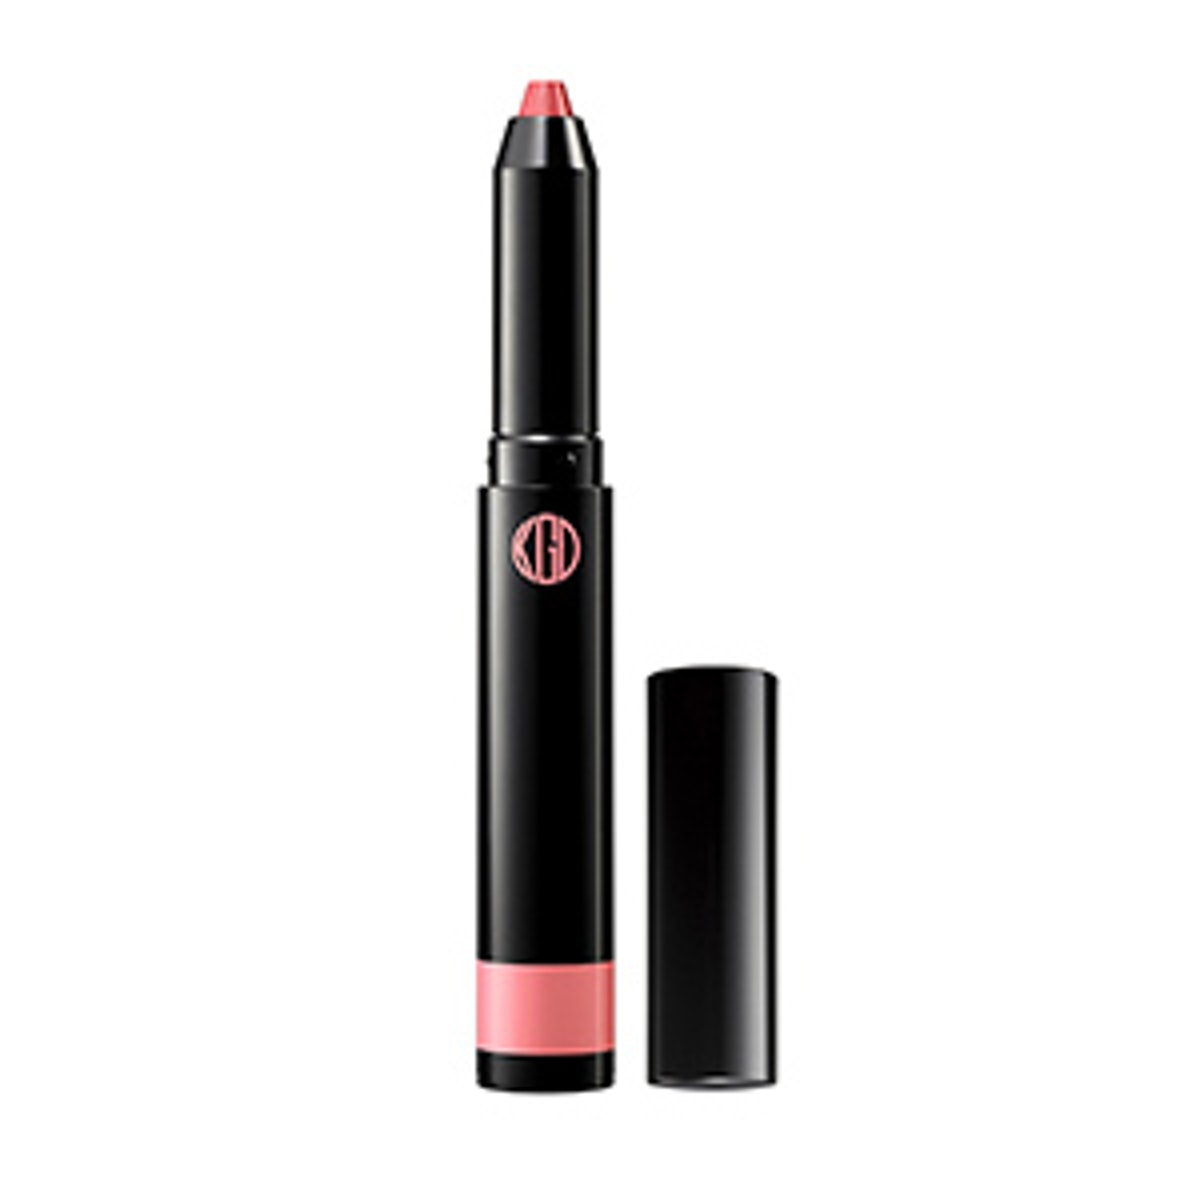 Lip Crayon in Coral Pink